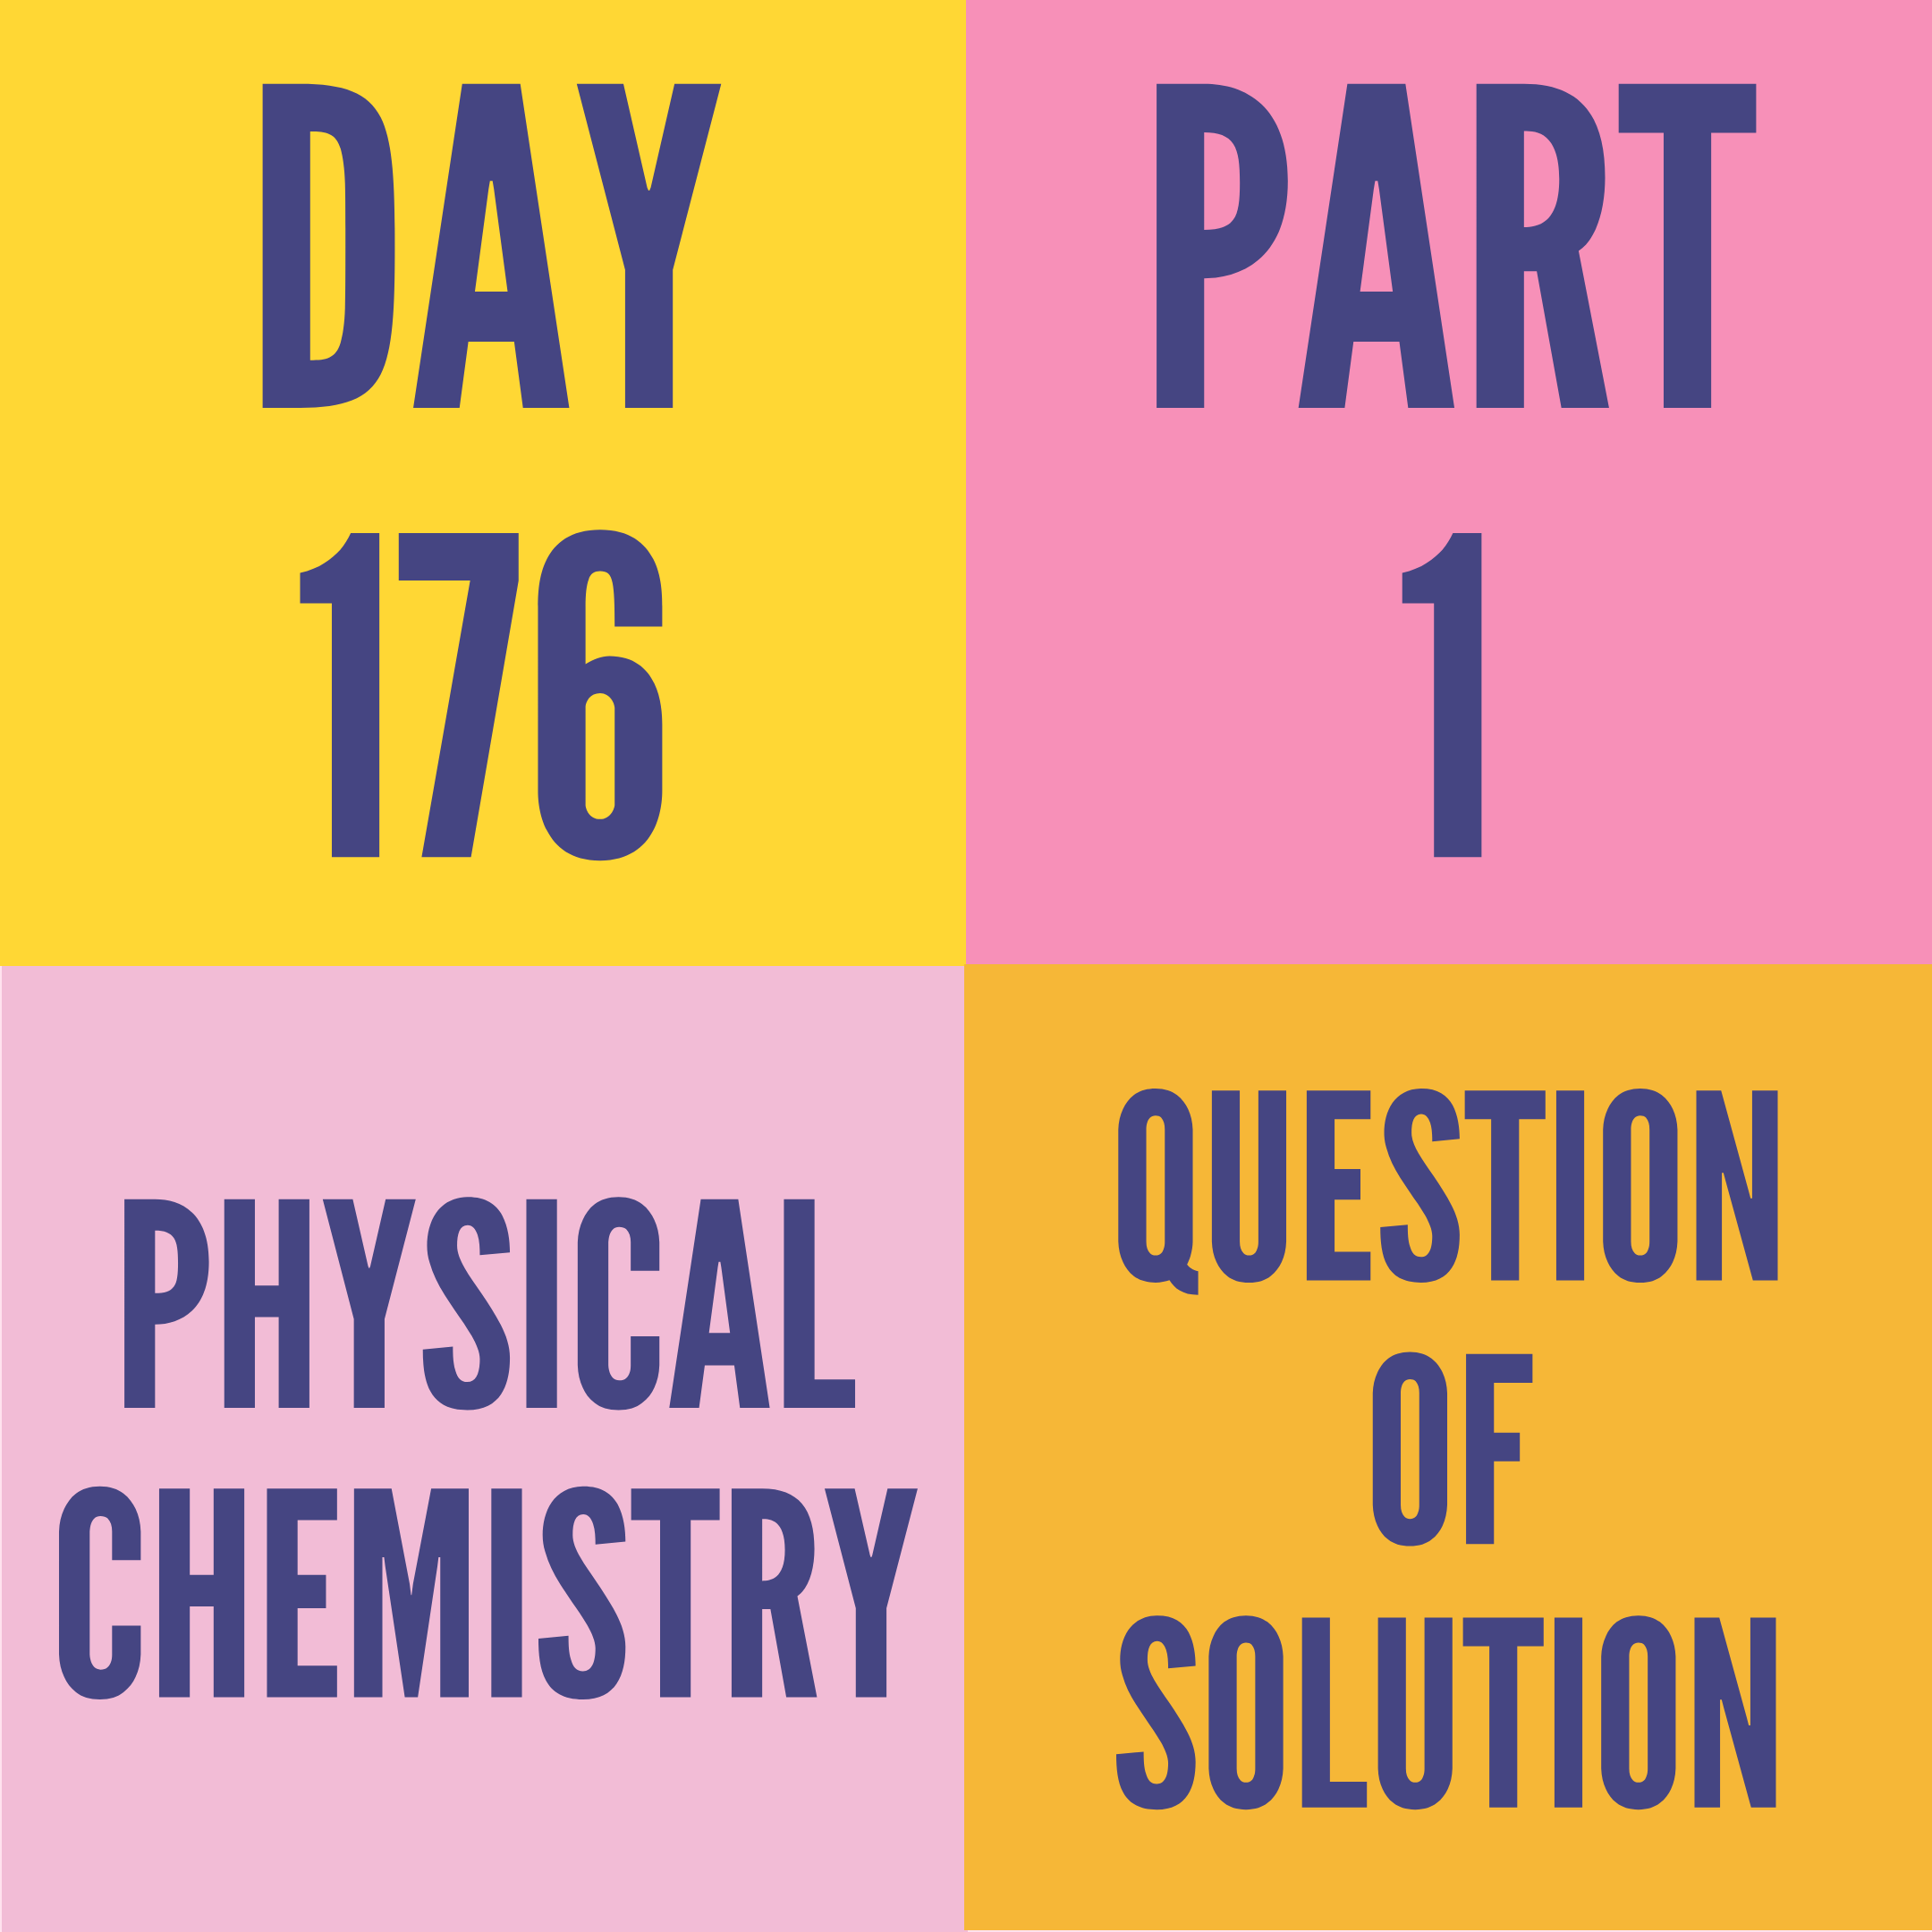 DAY-176 PART-1 QUESTION OF SOLUTION